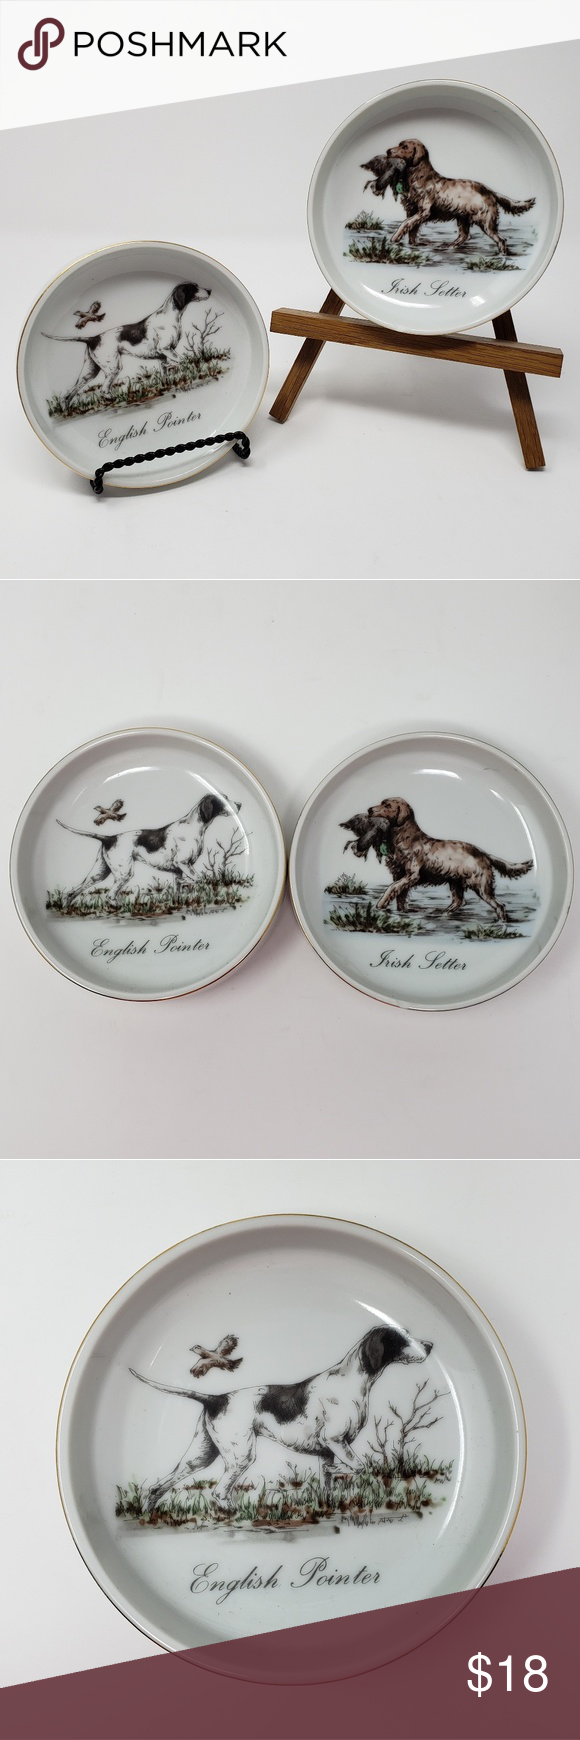 Vintage Hunting Dog Irish Setter Trinket Bowl